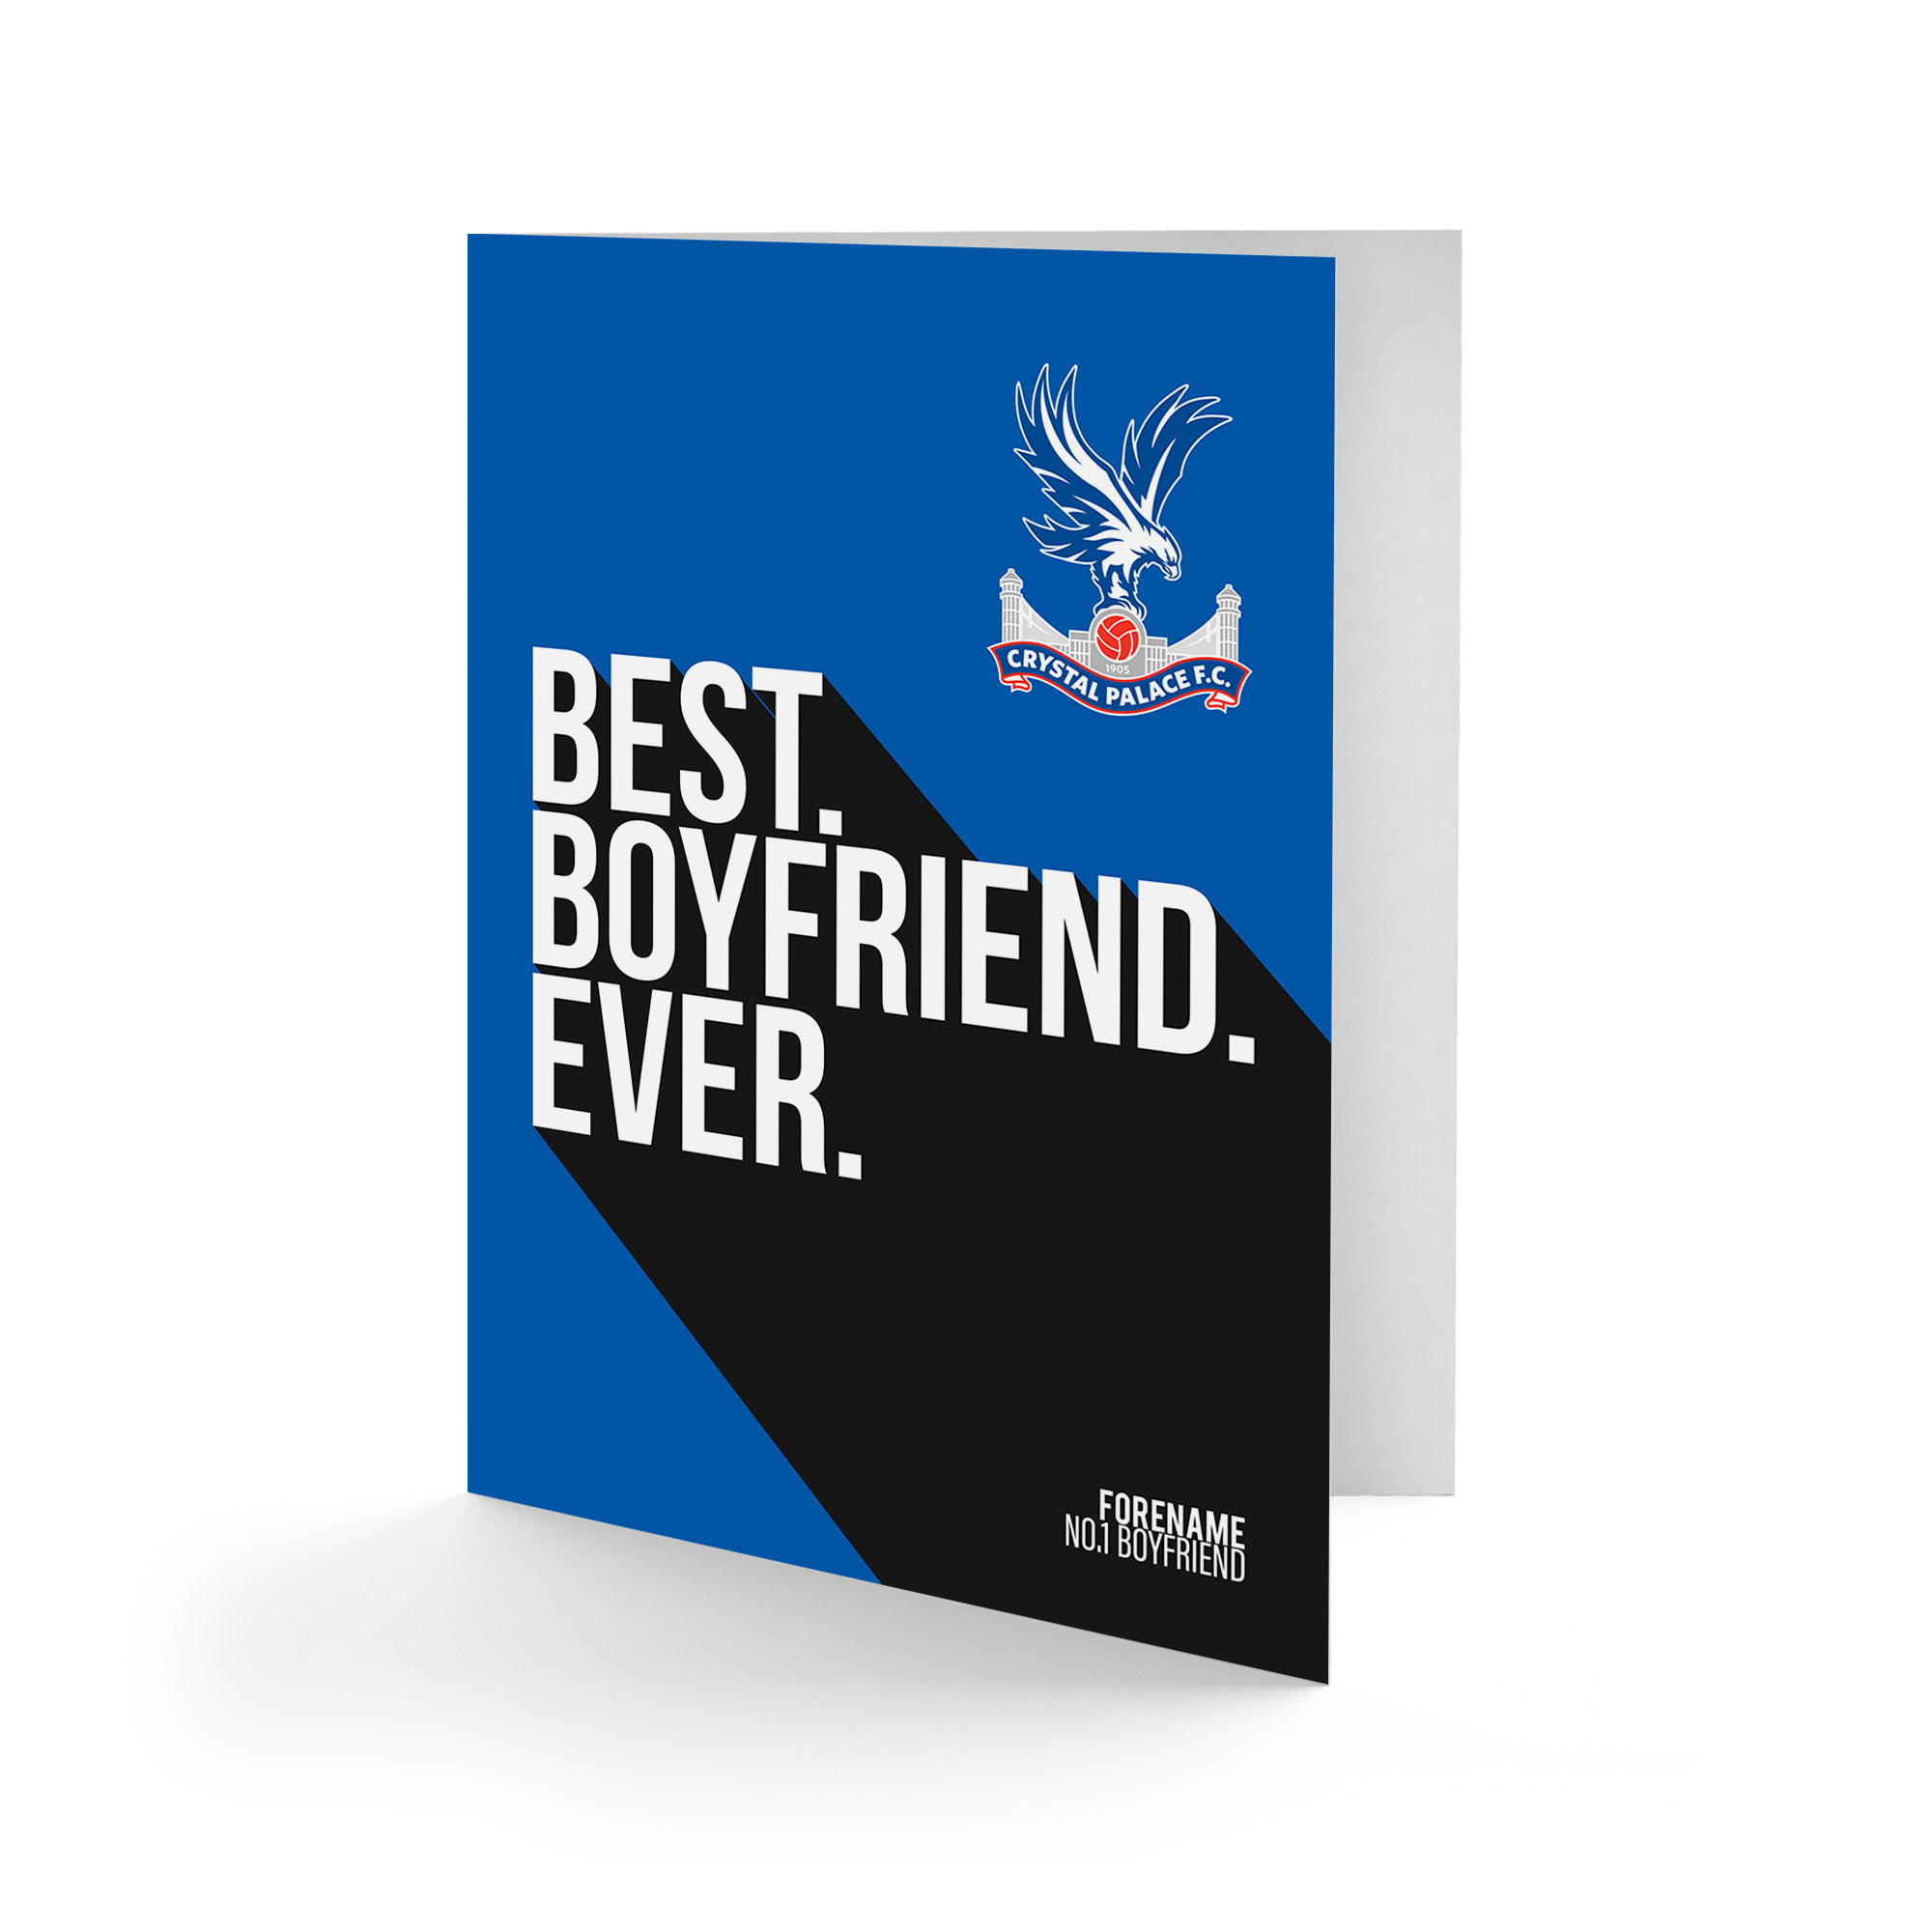 Crystal Palace FC Best Boyfriend Ever Card